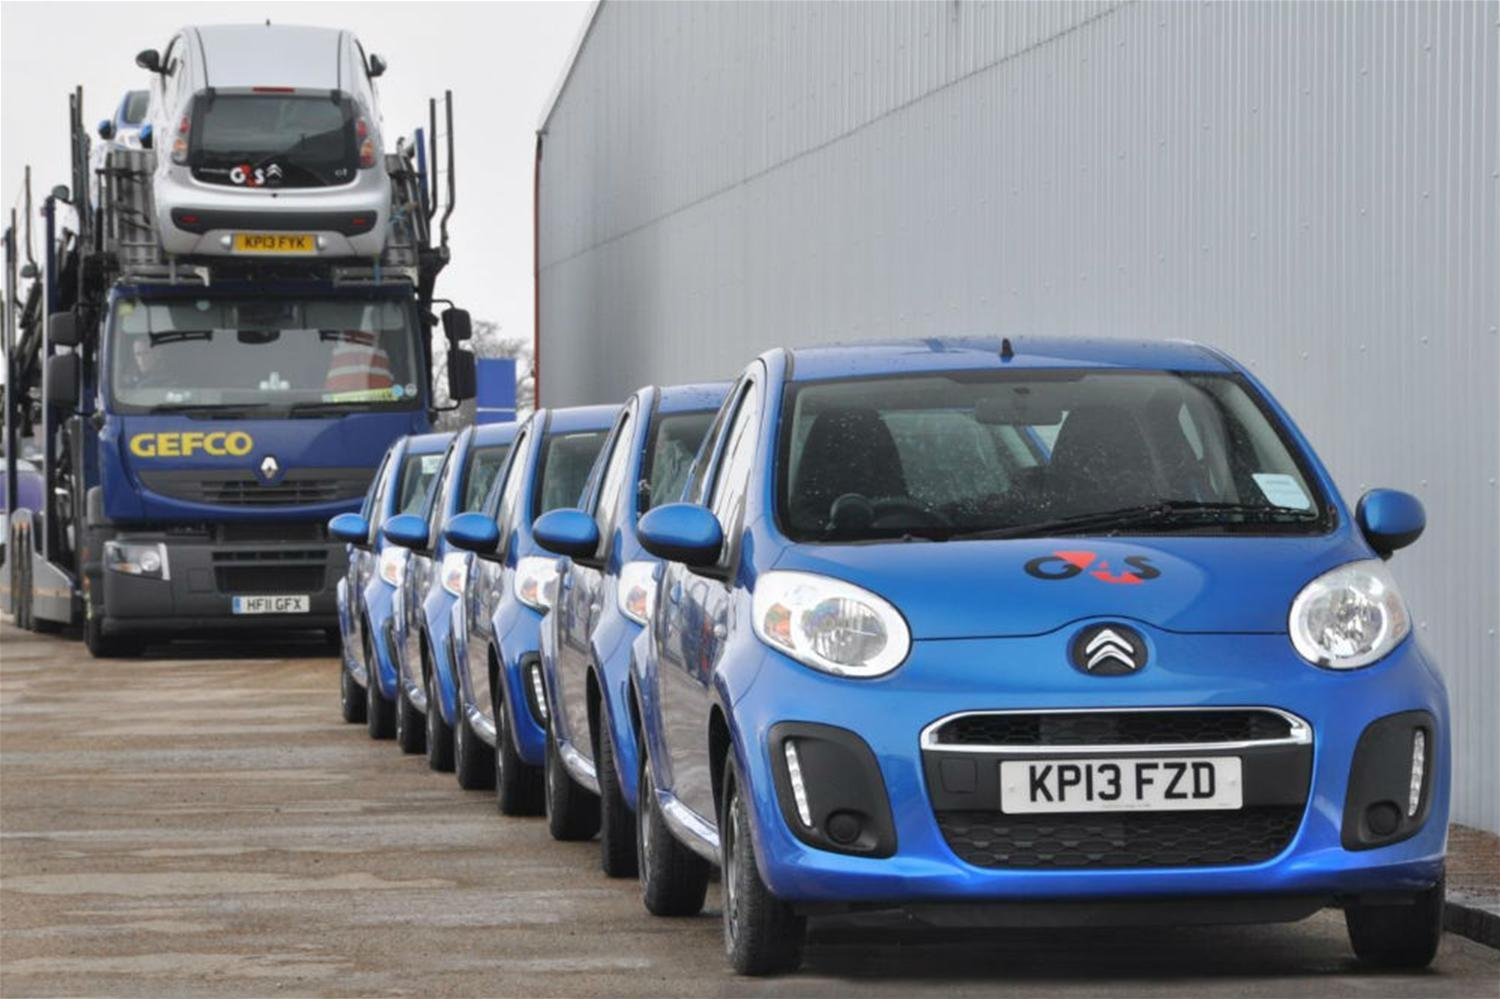 Large Citroen C1 Fleet Joins Business Giant G4S